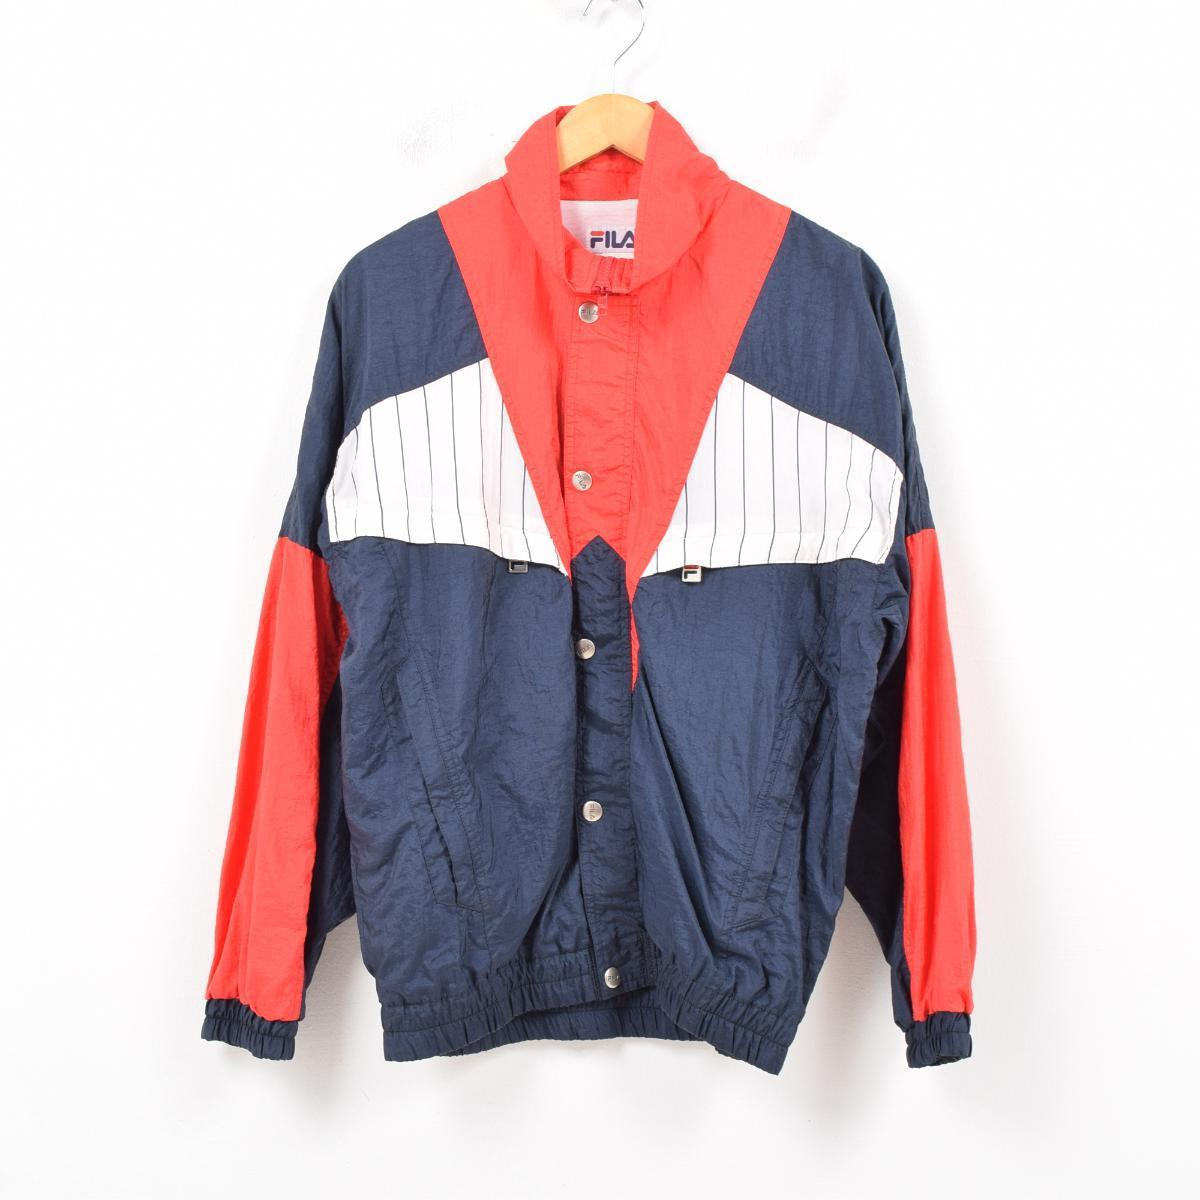 dec80e34 90s Fila FILA nylon jacket men L /wba1527